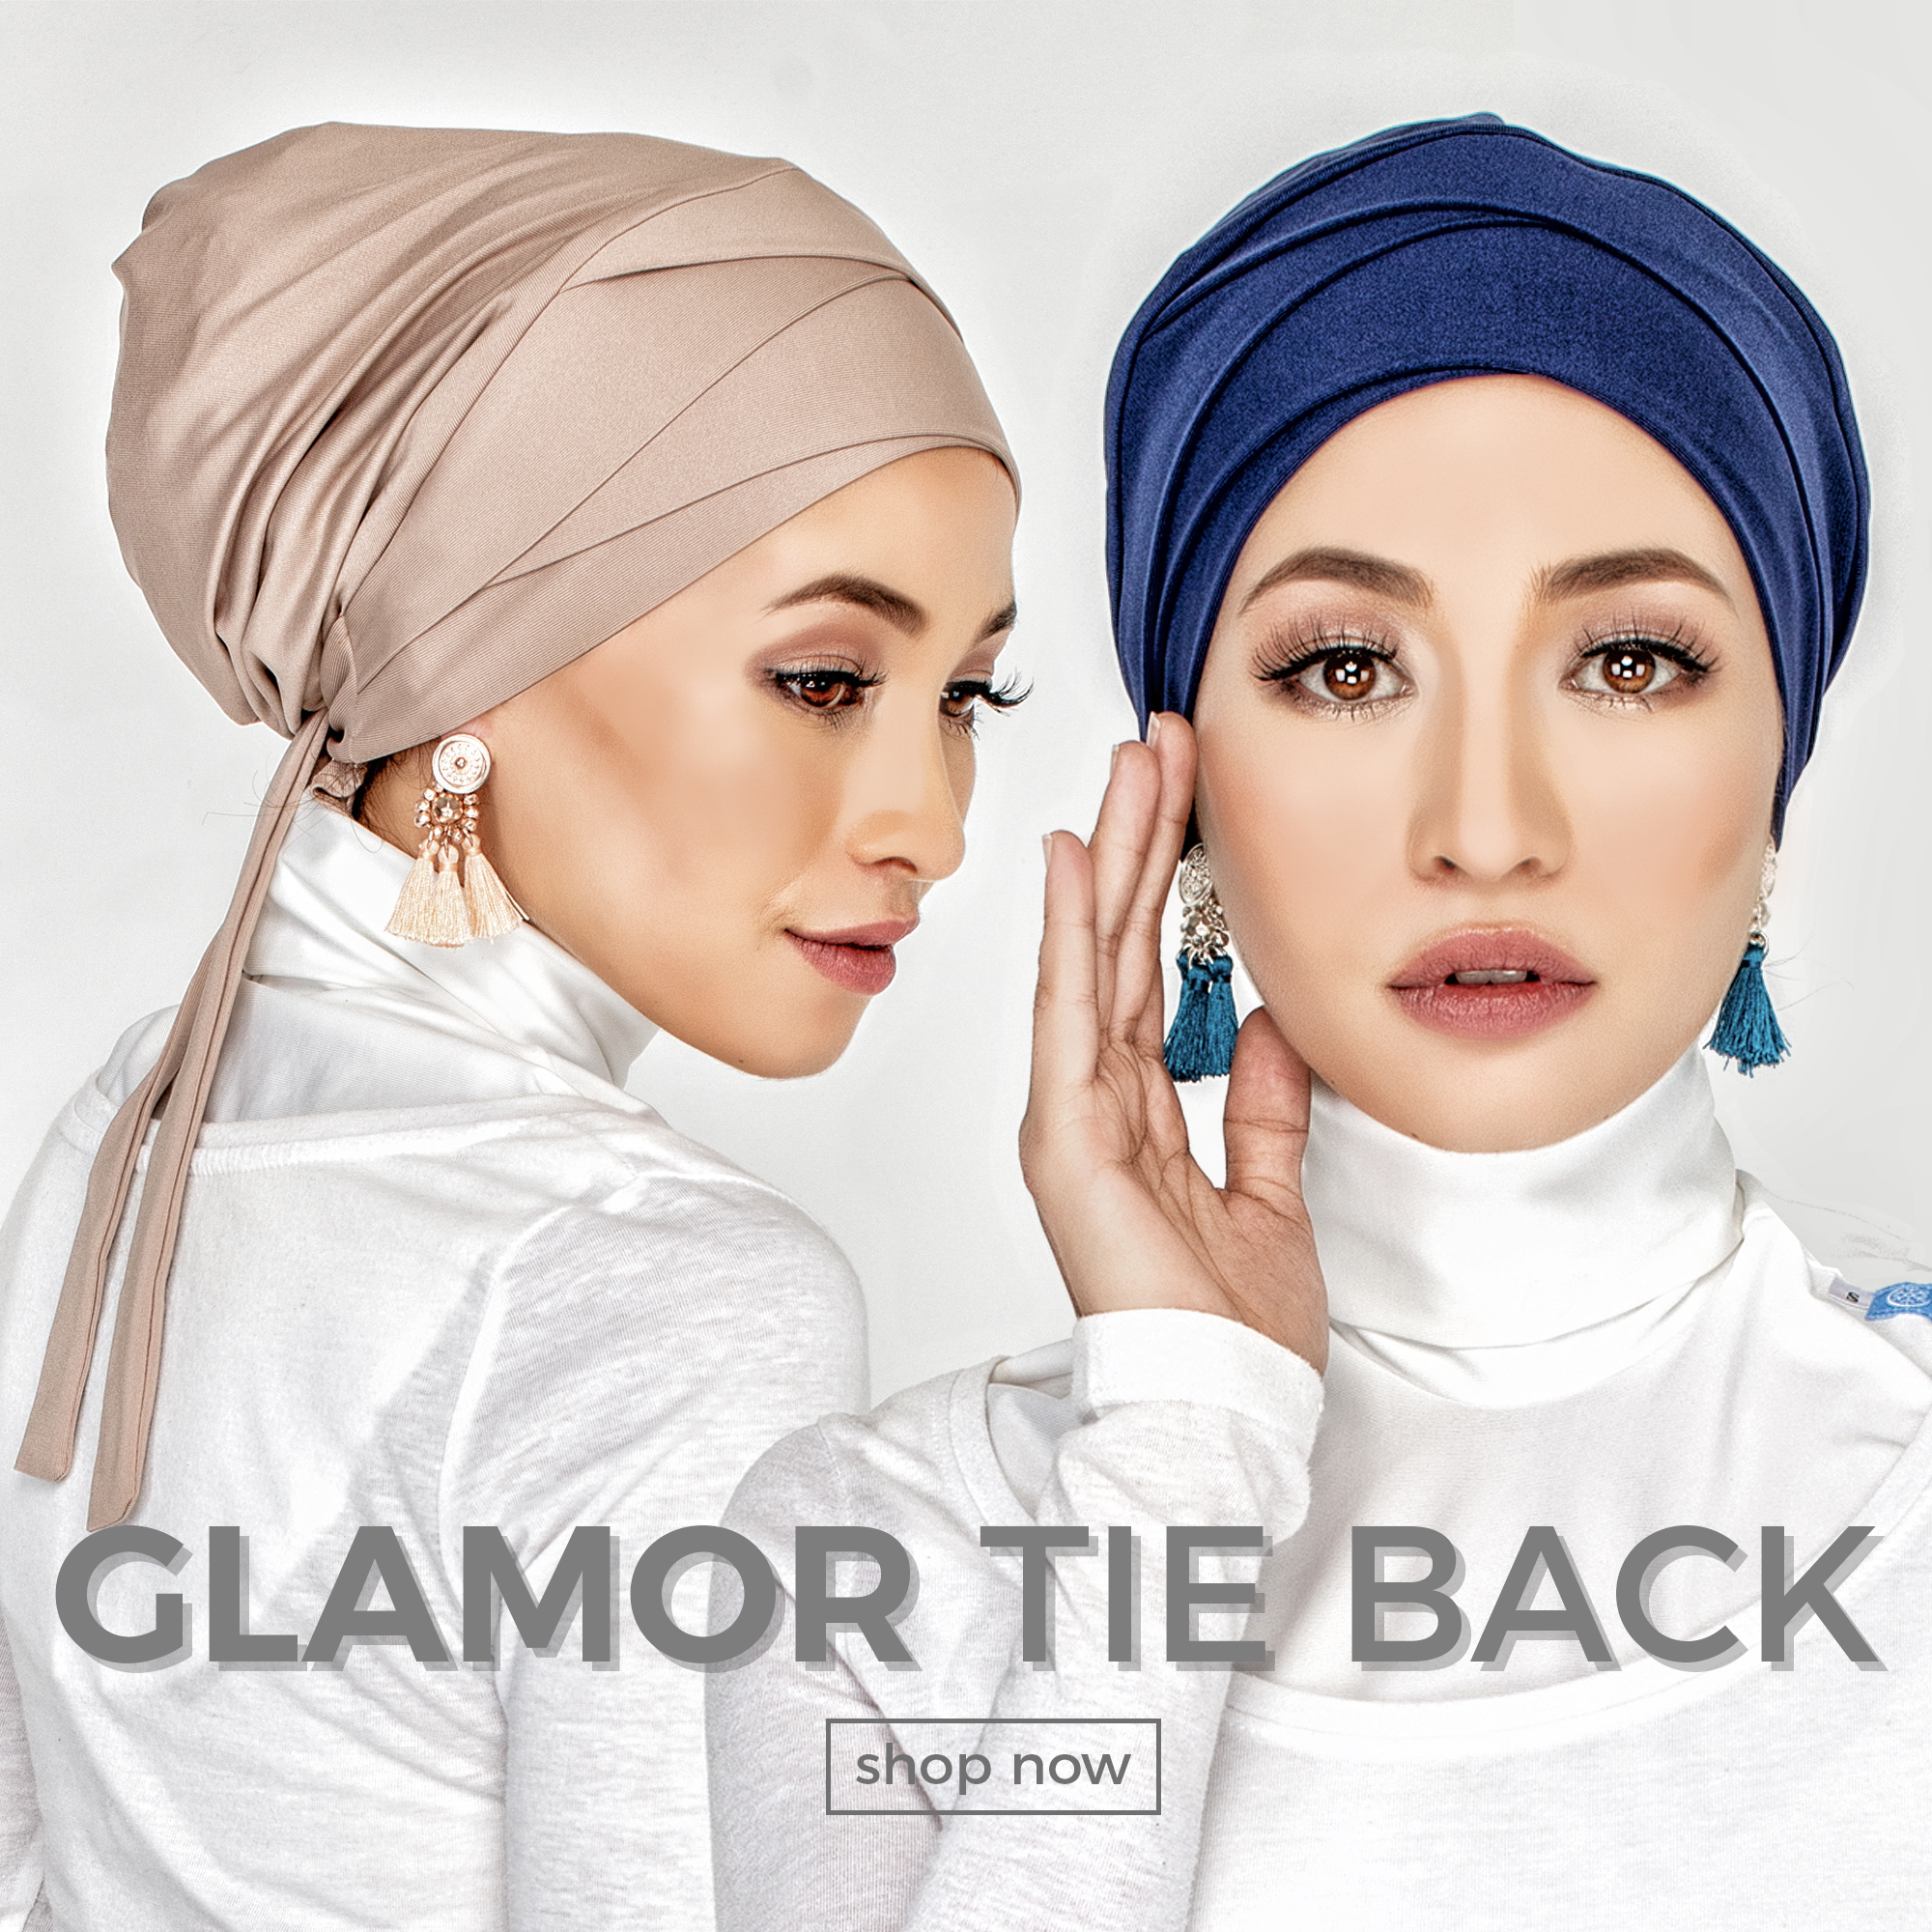 Glamor Tie Back collection by AIRAZ InnerSejuk